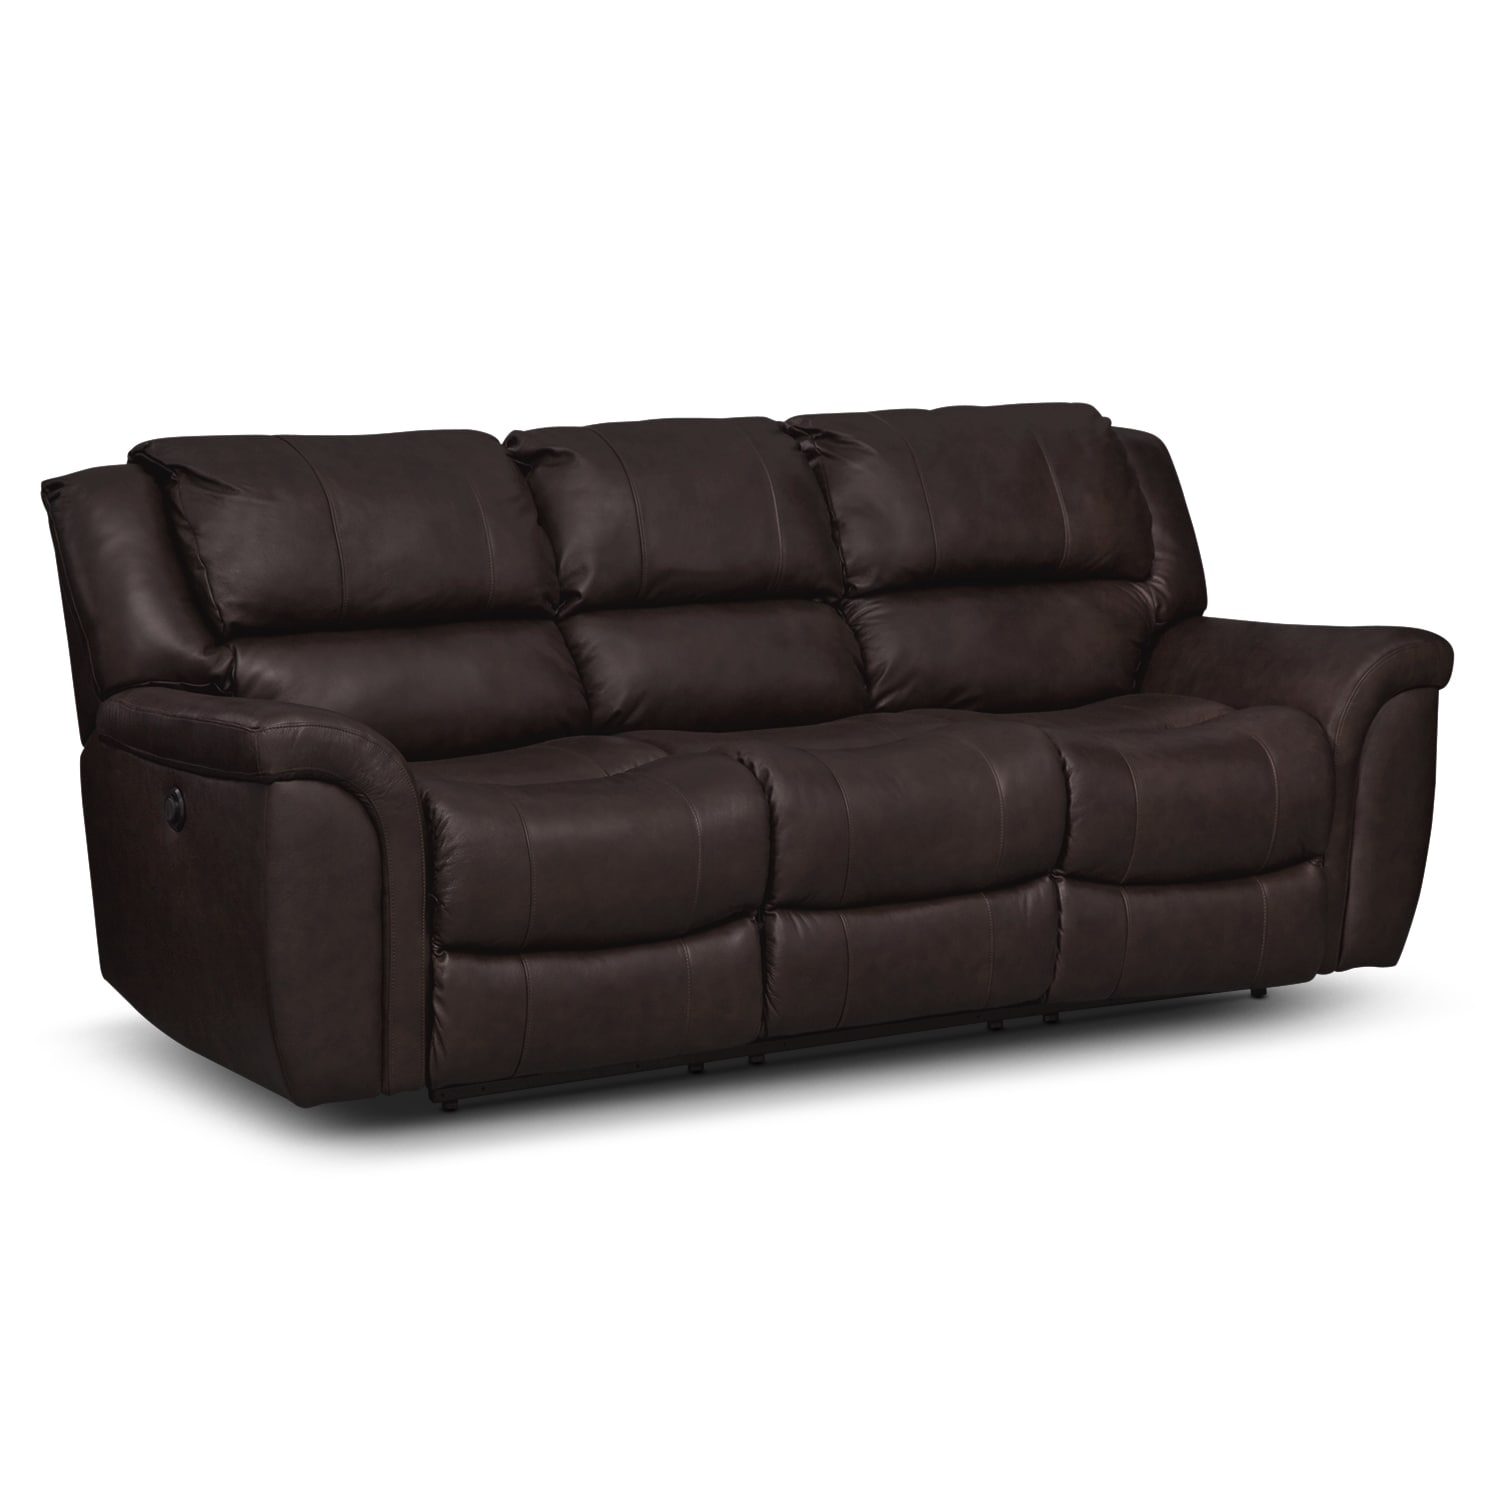 Power Reclining Leather Sofa Coronado Leather Power Reclining Sofa Value City Furniture